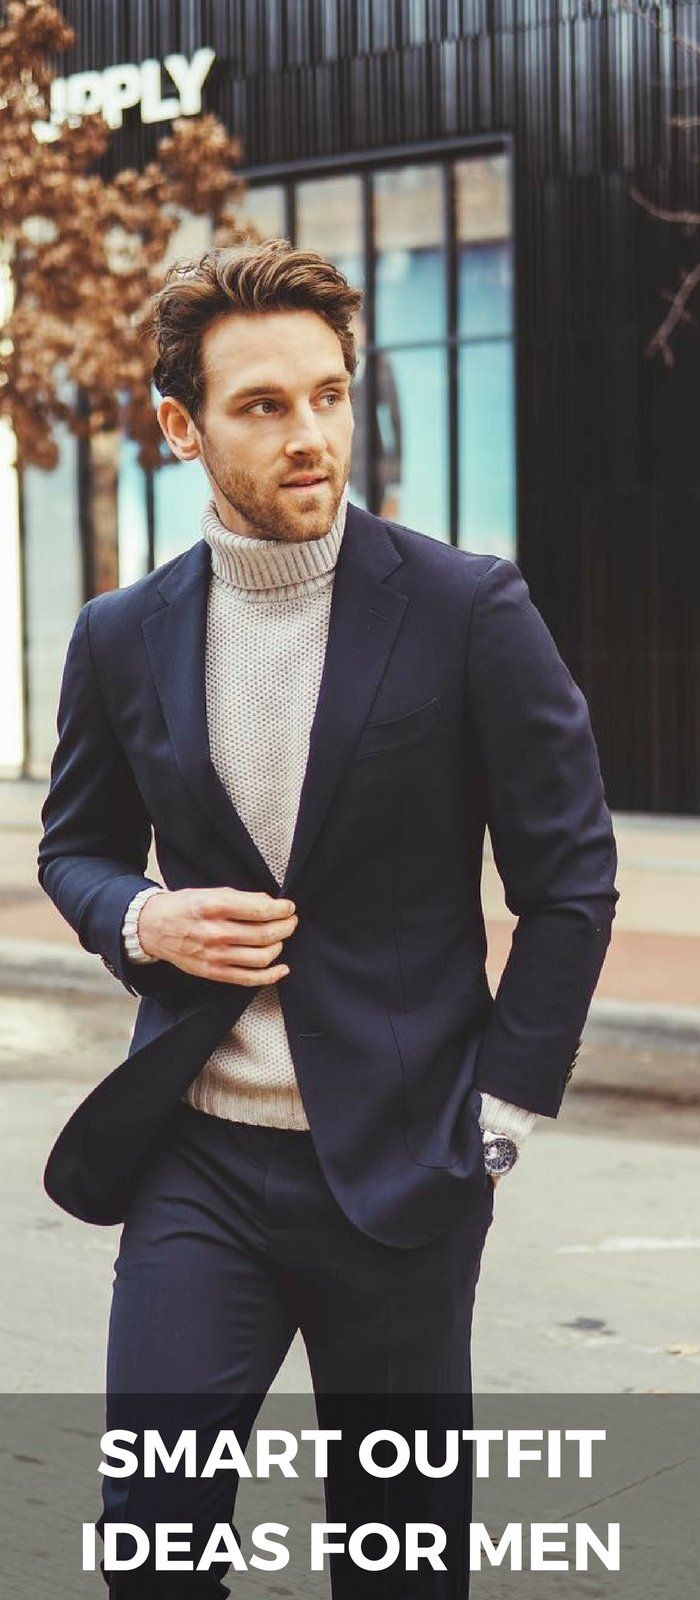 12 Smart Outfit ideas To Help You Look Your Best – LIFESTYLE BY PS